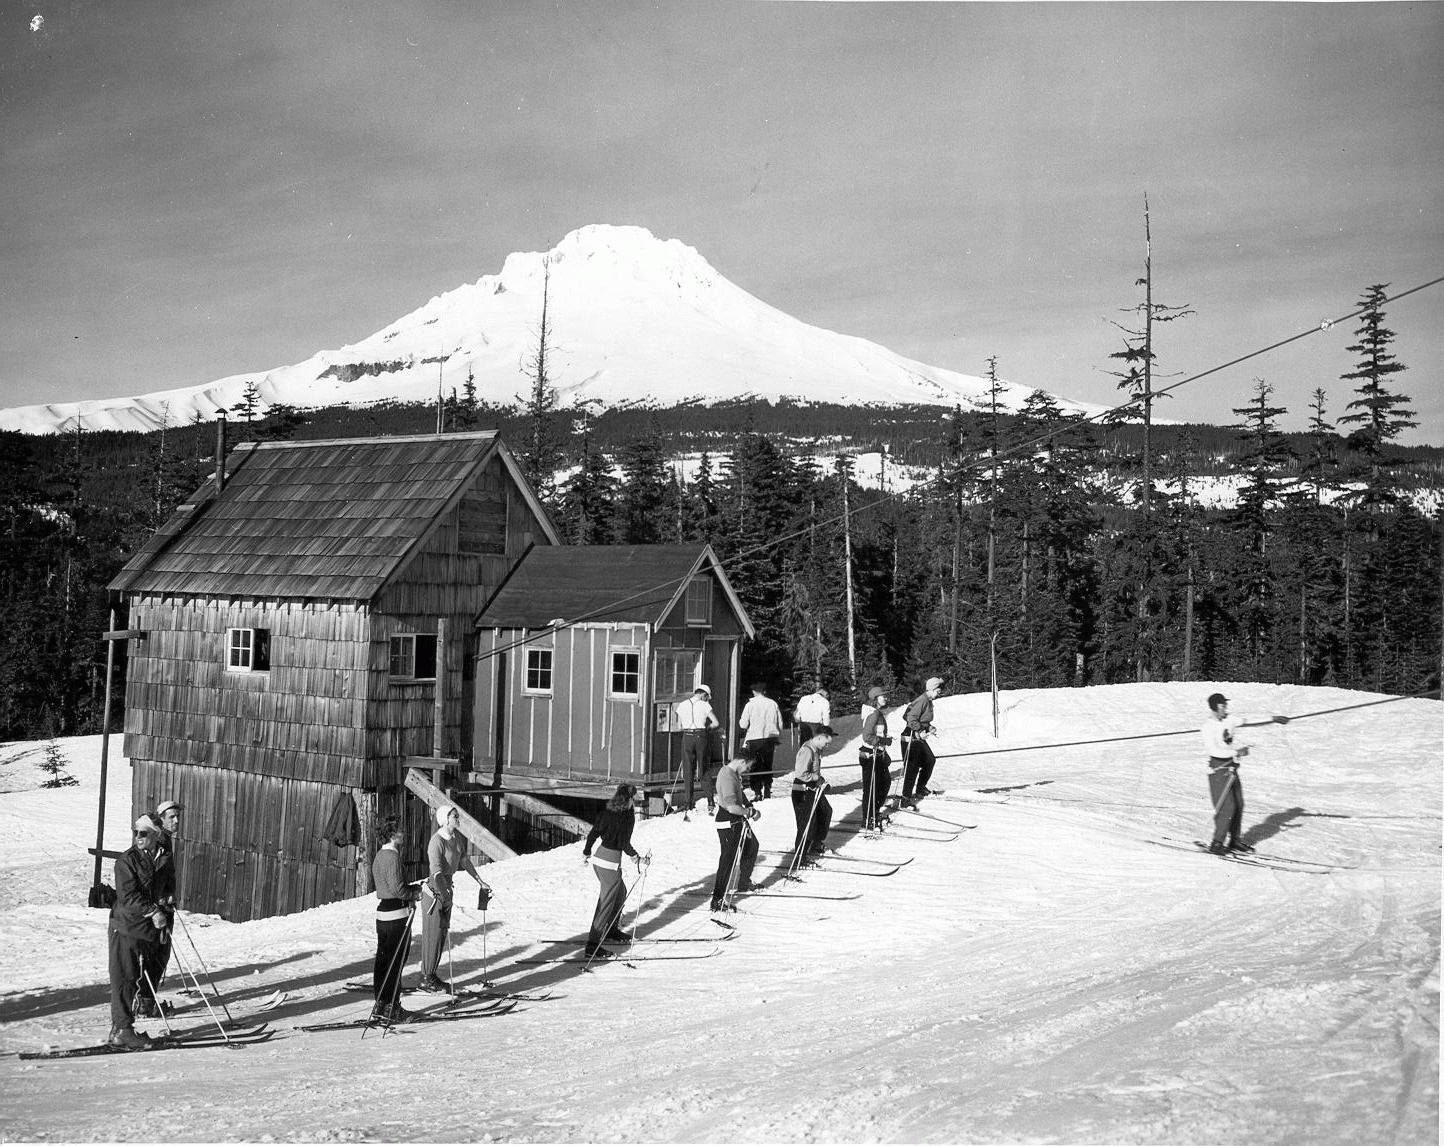 A old black and white vintage photo of people skiing.